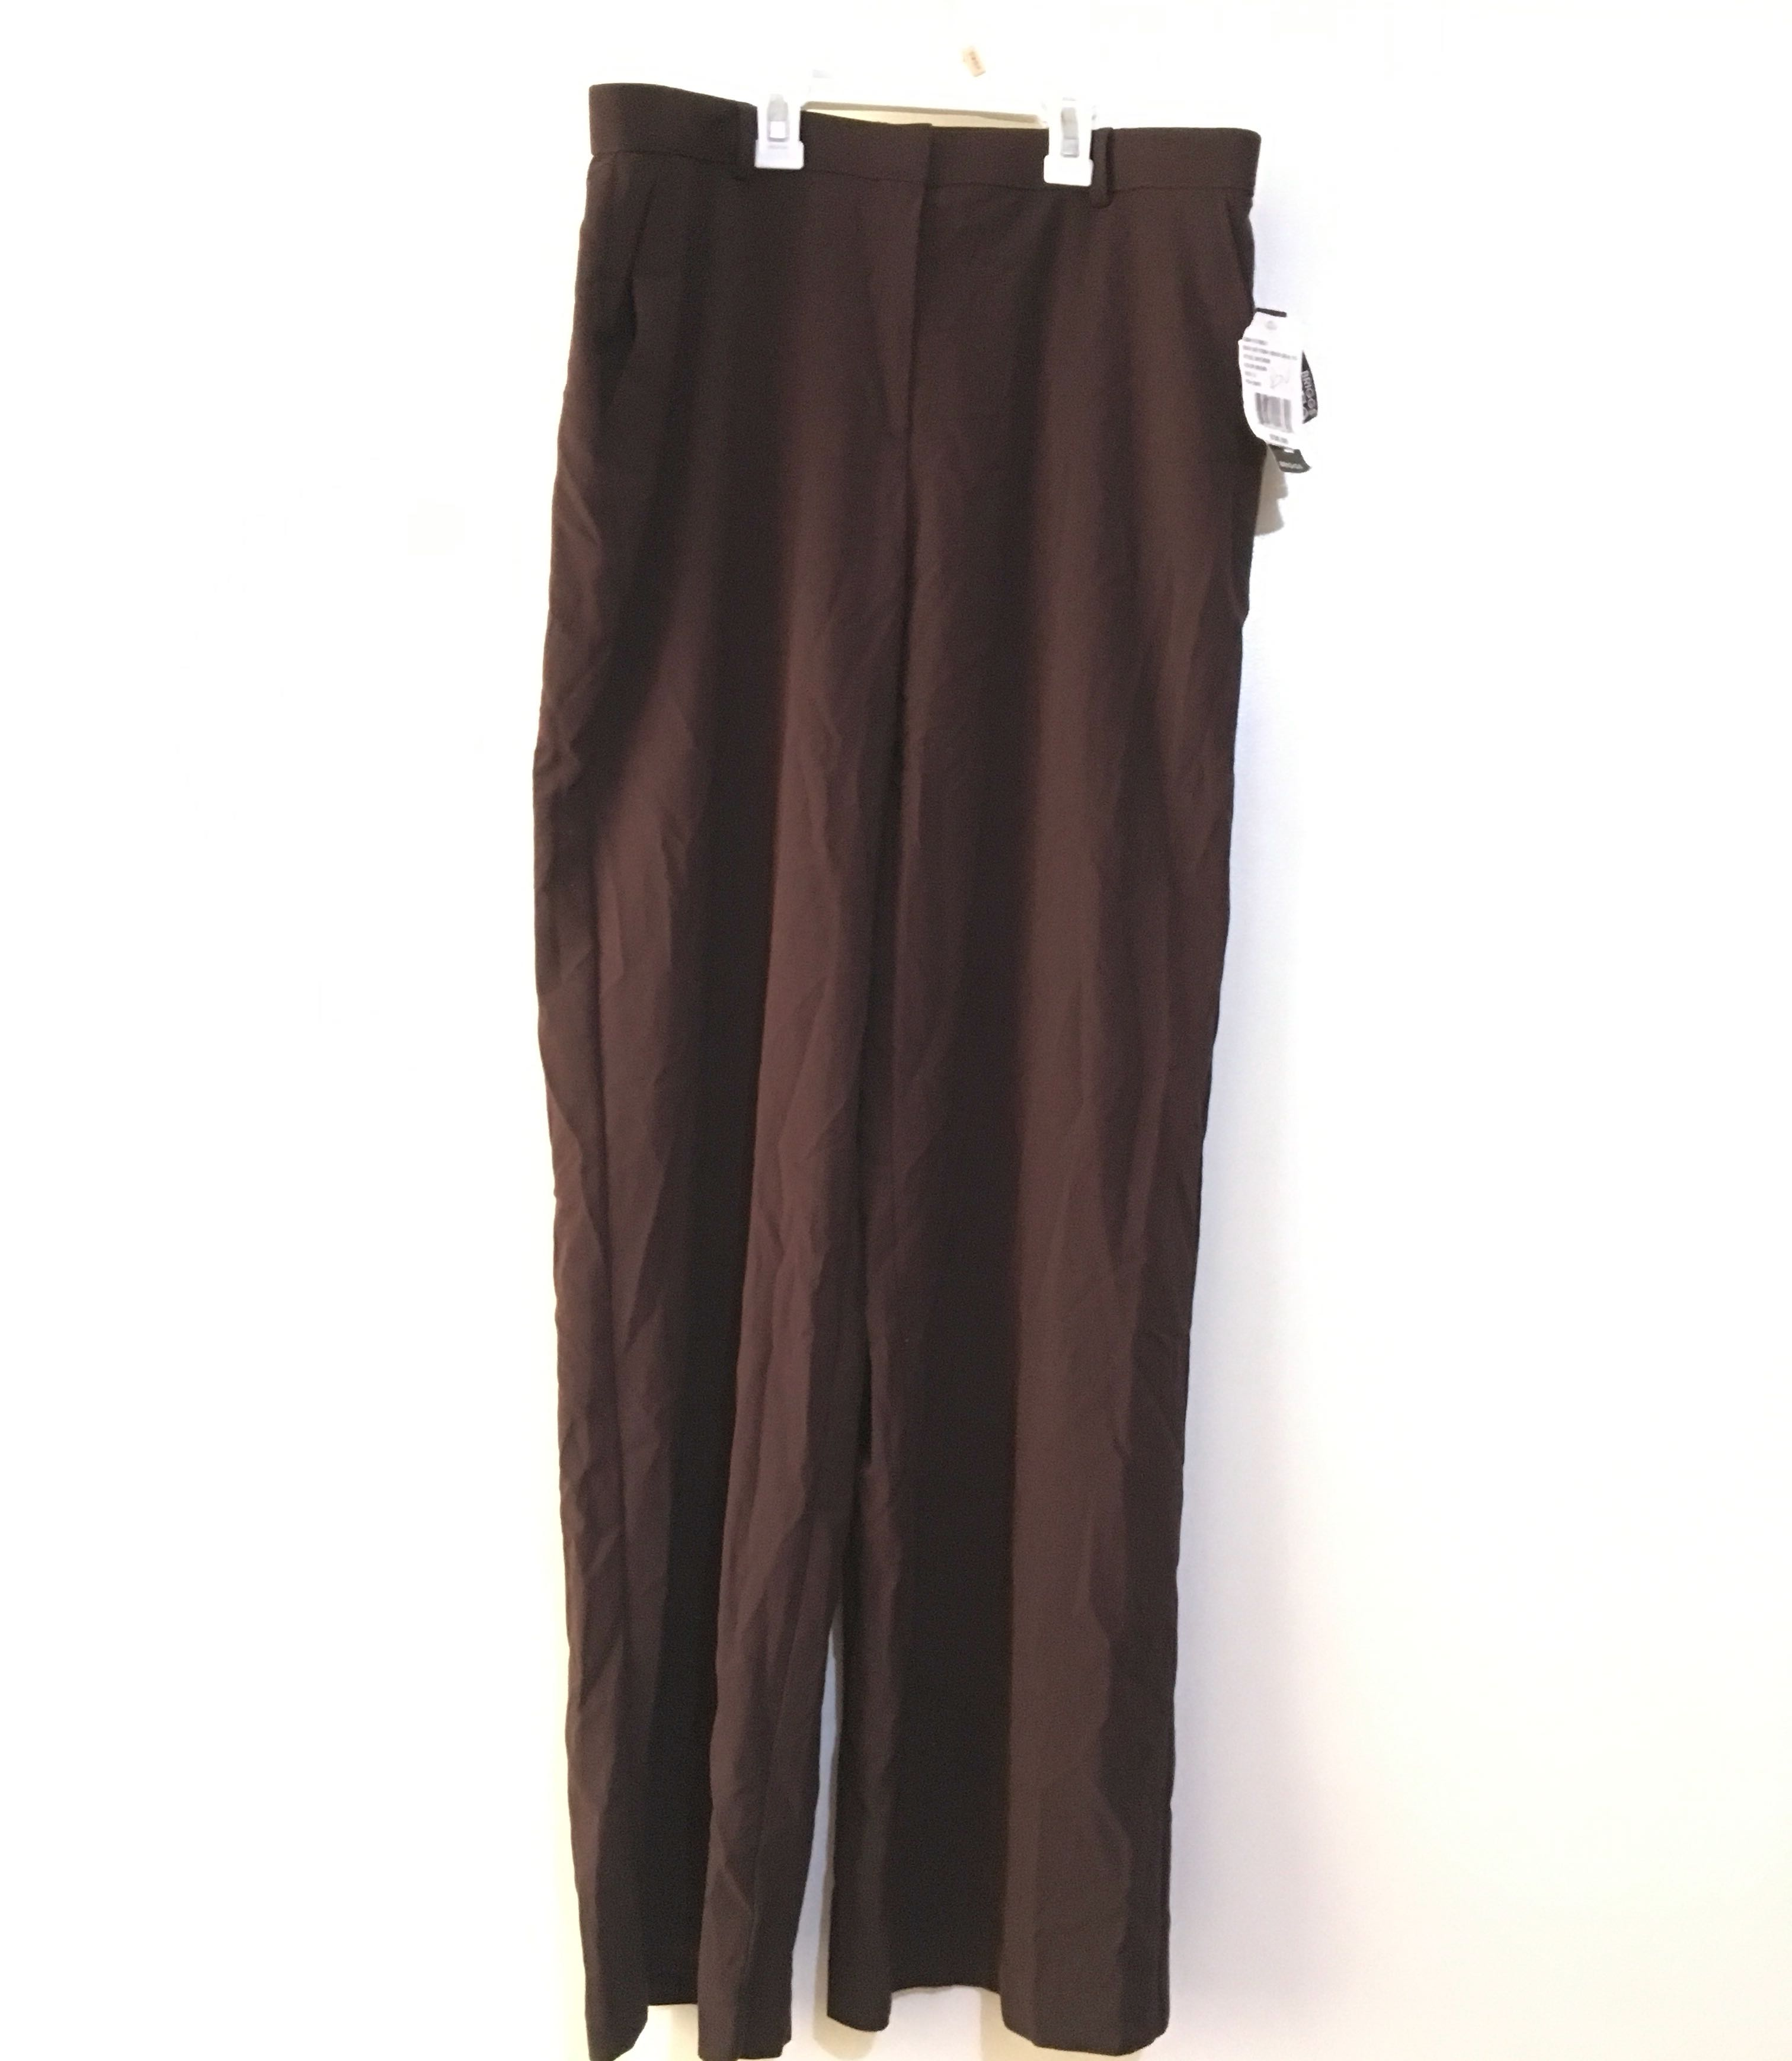 Charity Sale! Authentic Briggs New York Brown Dress Woman's Stretchy Work Office Pants Slacks Size 12